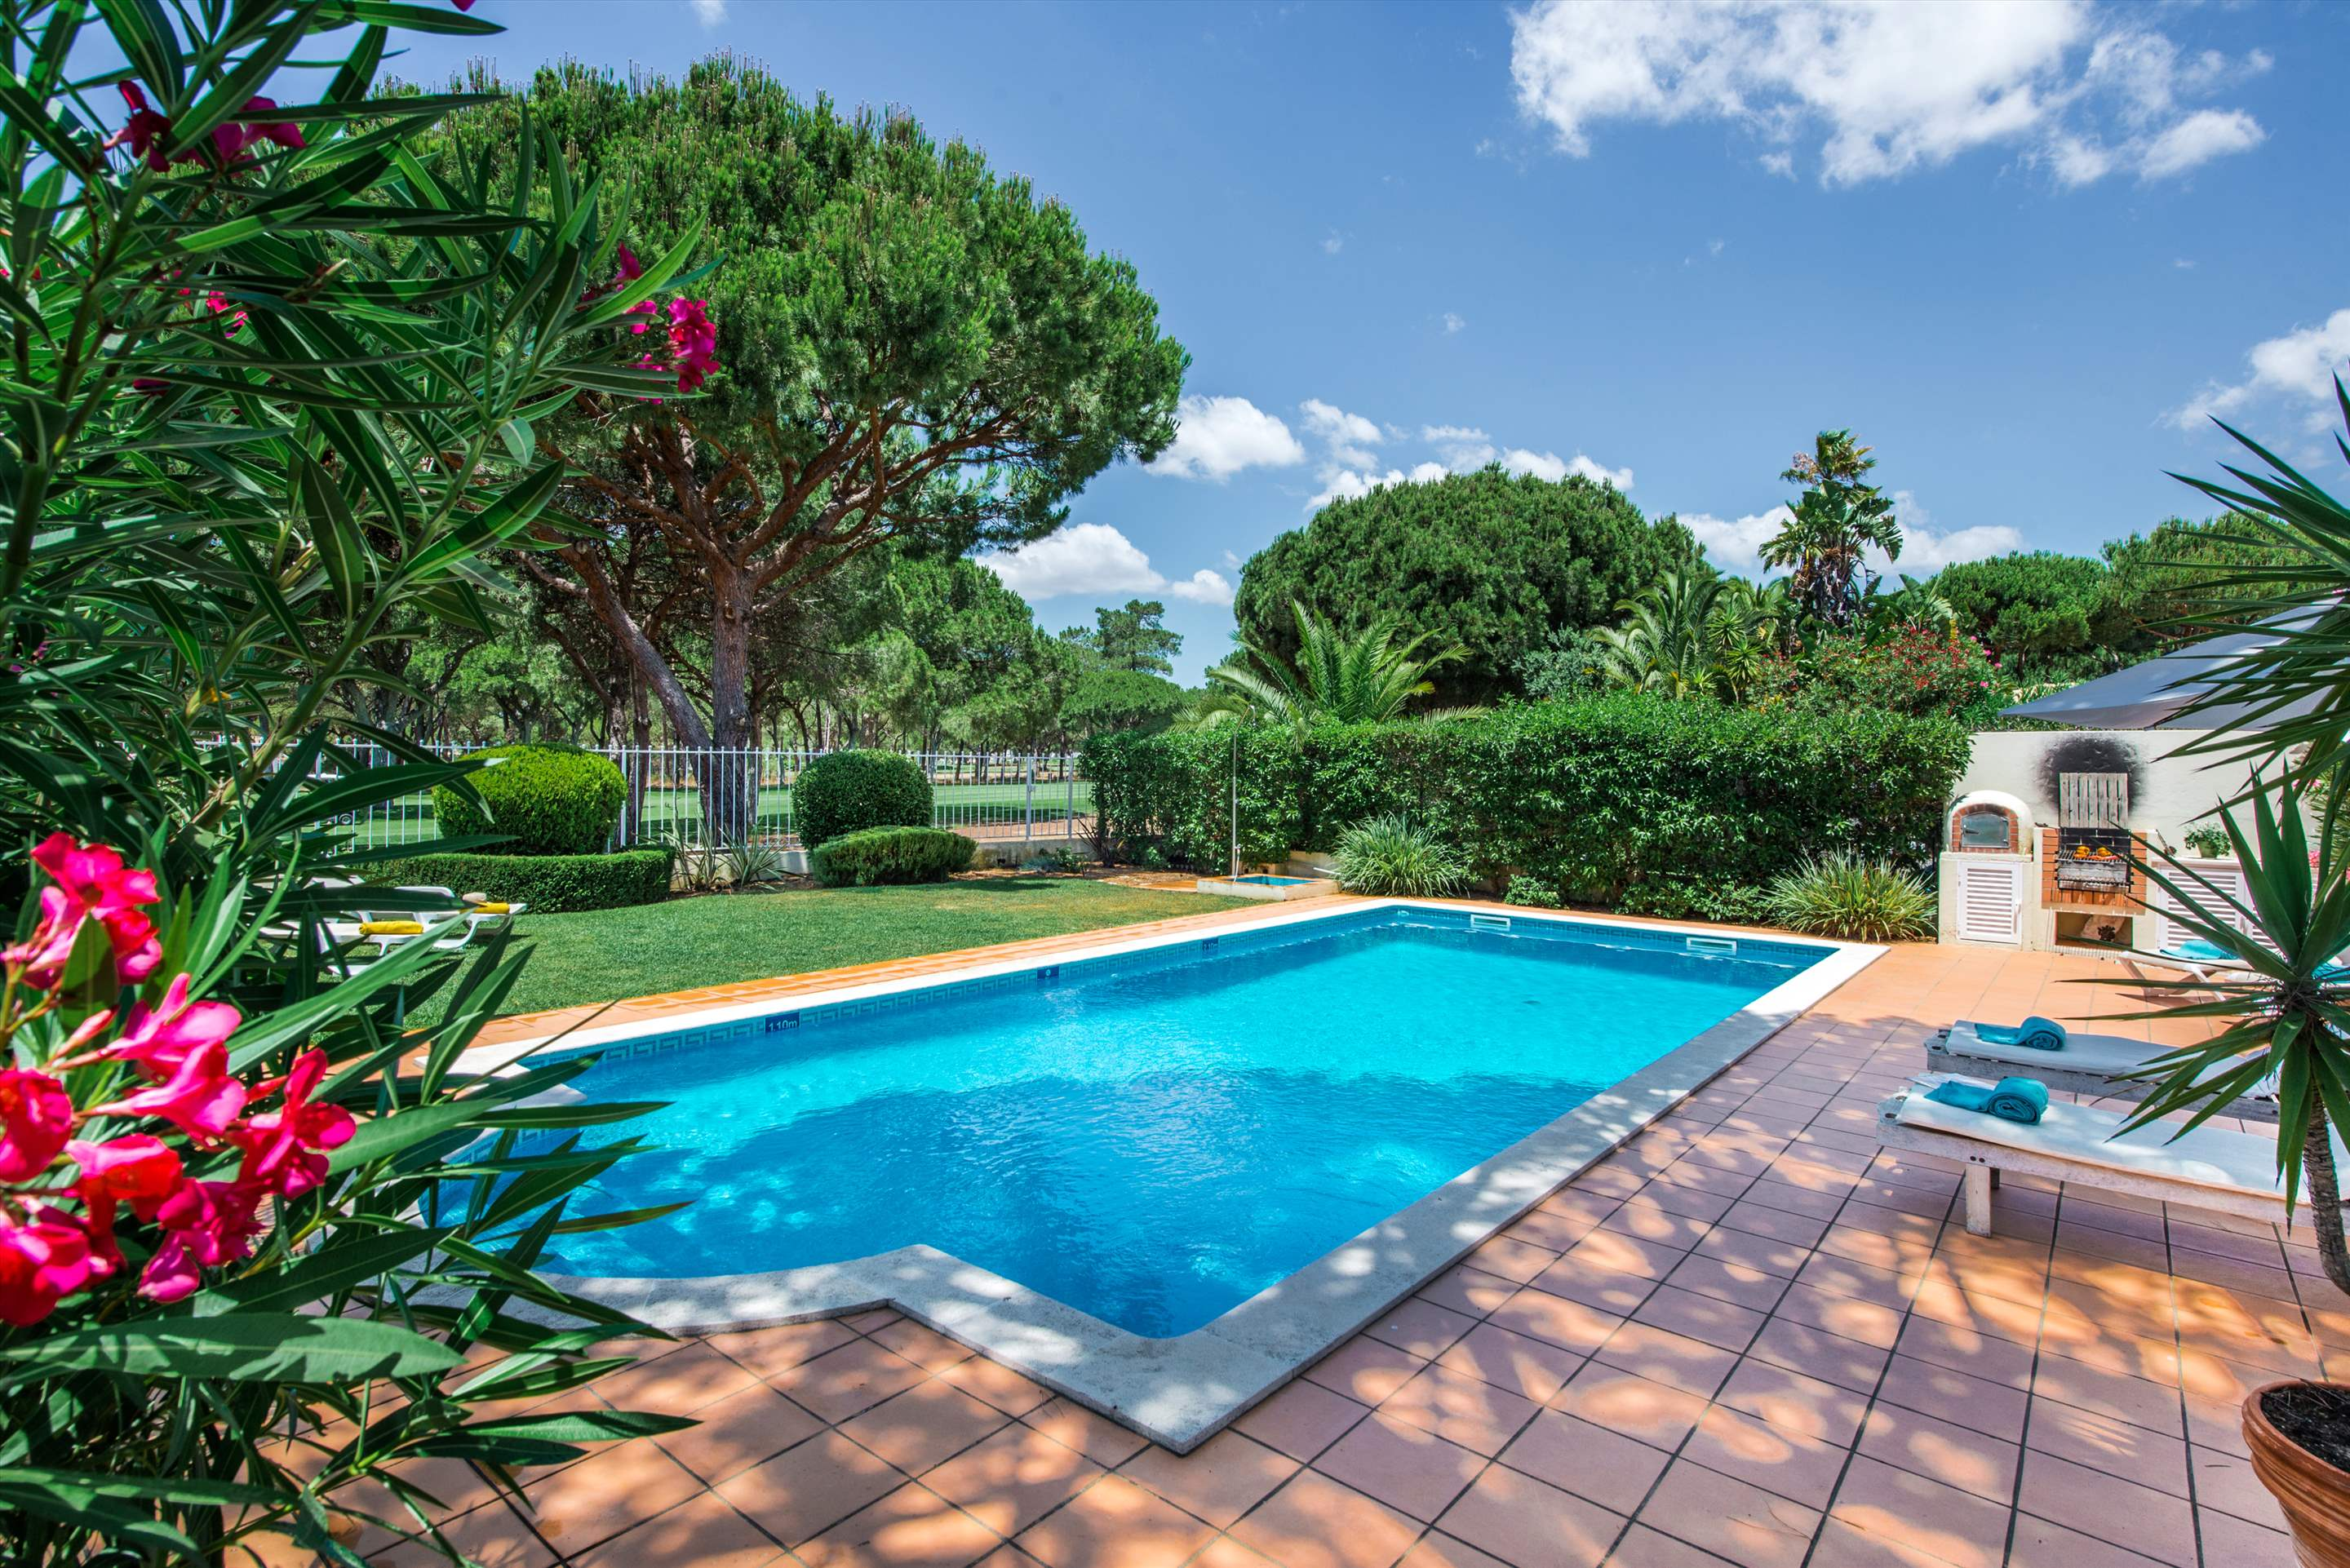 Vivenda Anita 1, 4 bedroom villa in Vilamoura Area, Algarve Photo #12